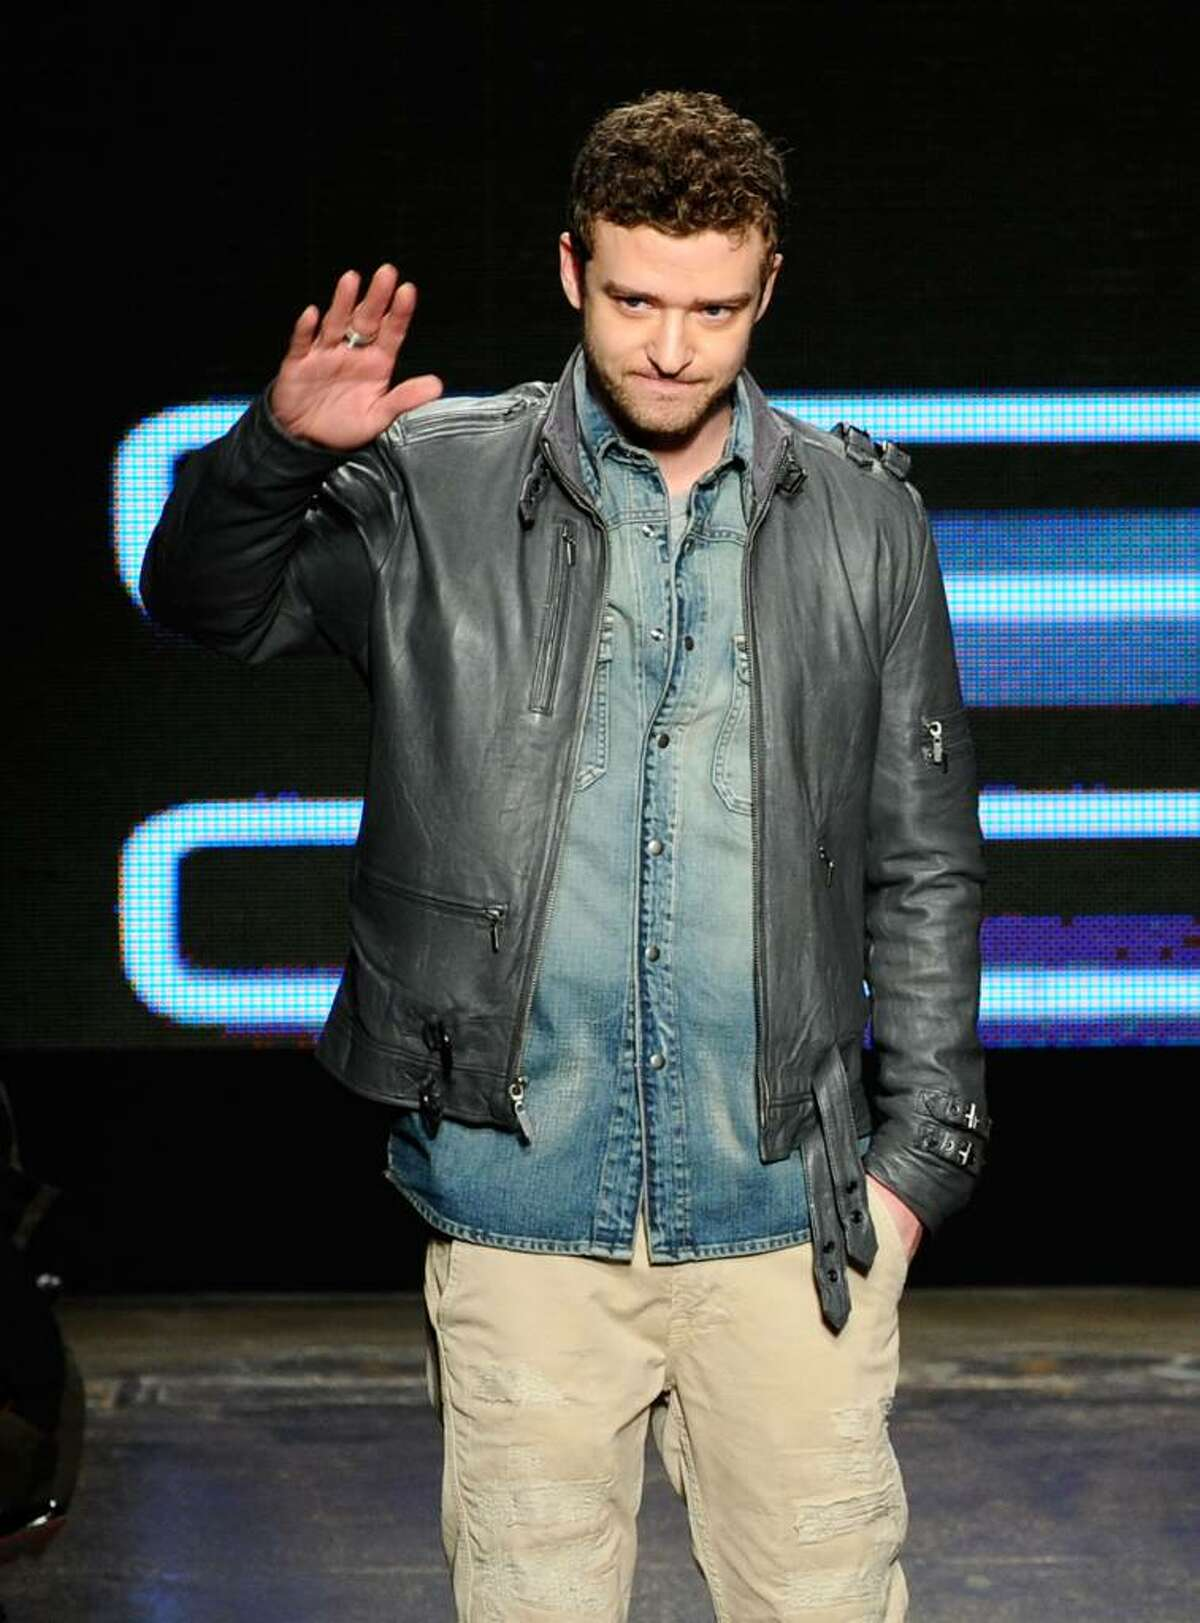 NEW YORK - FEBRUARY 17: Justin Timberlake walks the runway at the William Rast Fall 2010 Fashion Show during Mercedes-Benz Fashion Week at Cedar Lake on February 17, 2010 in New York City. (Photo by Stefan Gosatti/Getty Images) *** Local Caption *** Justin Timberlake